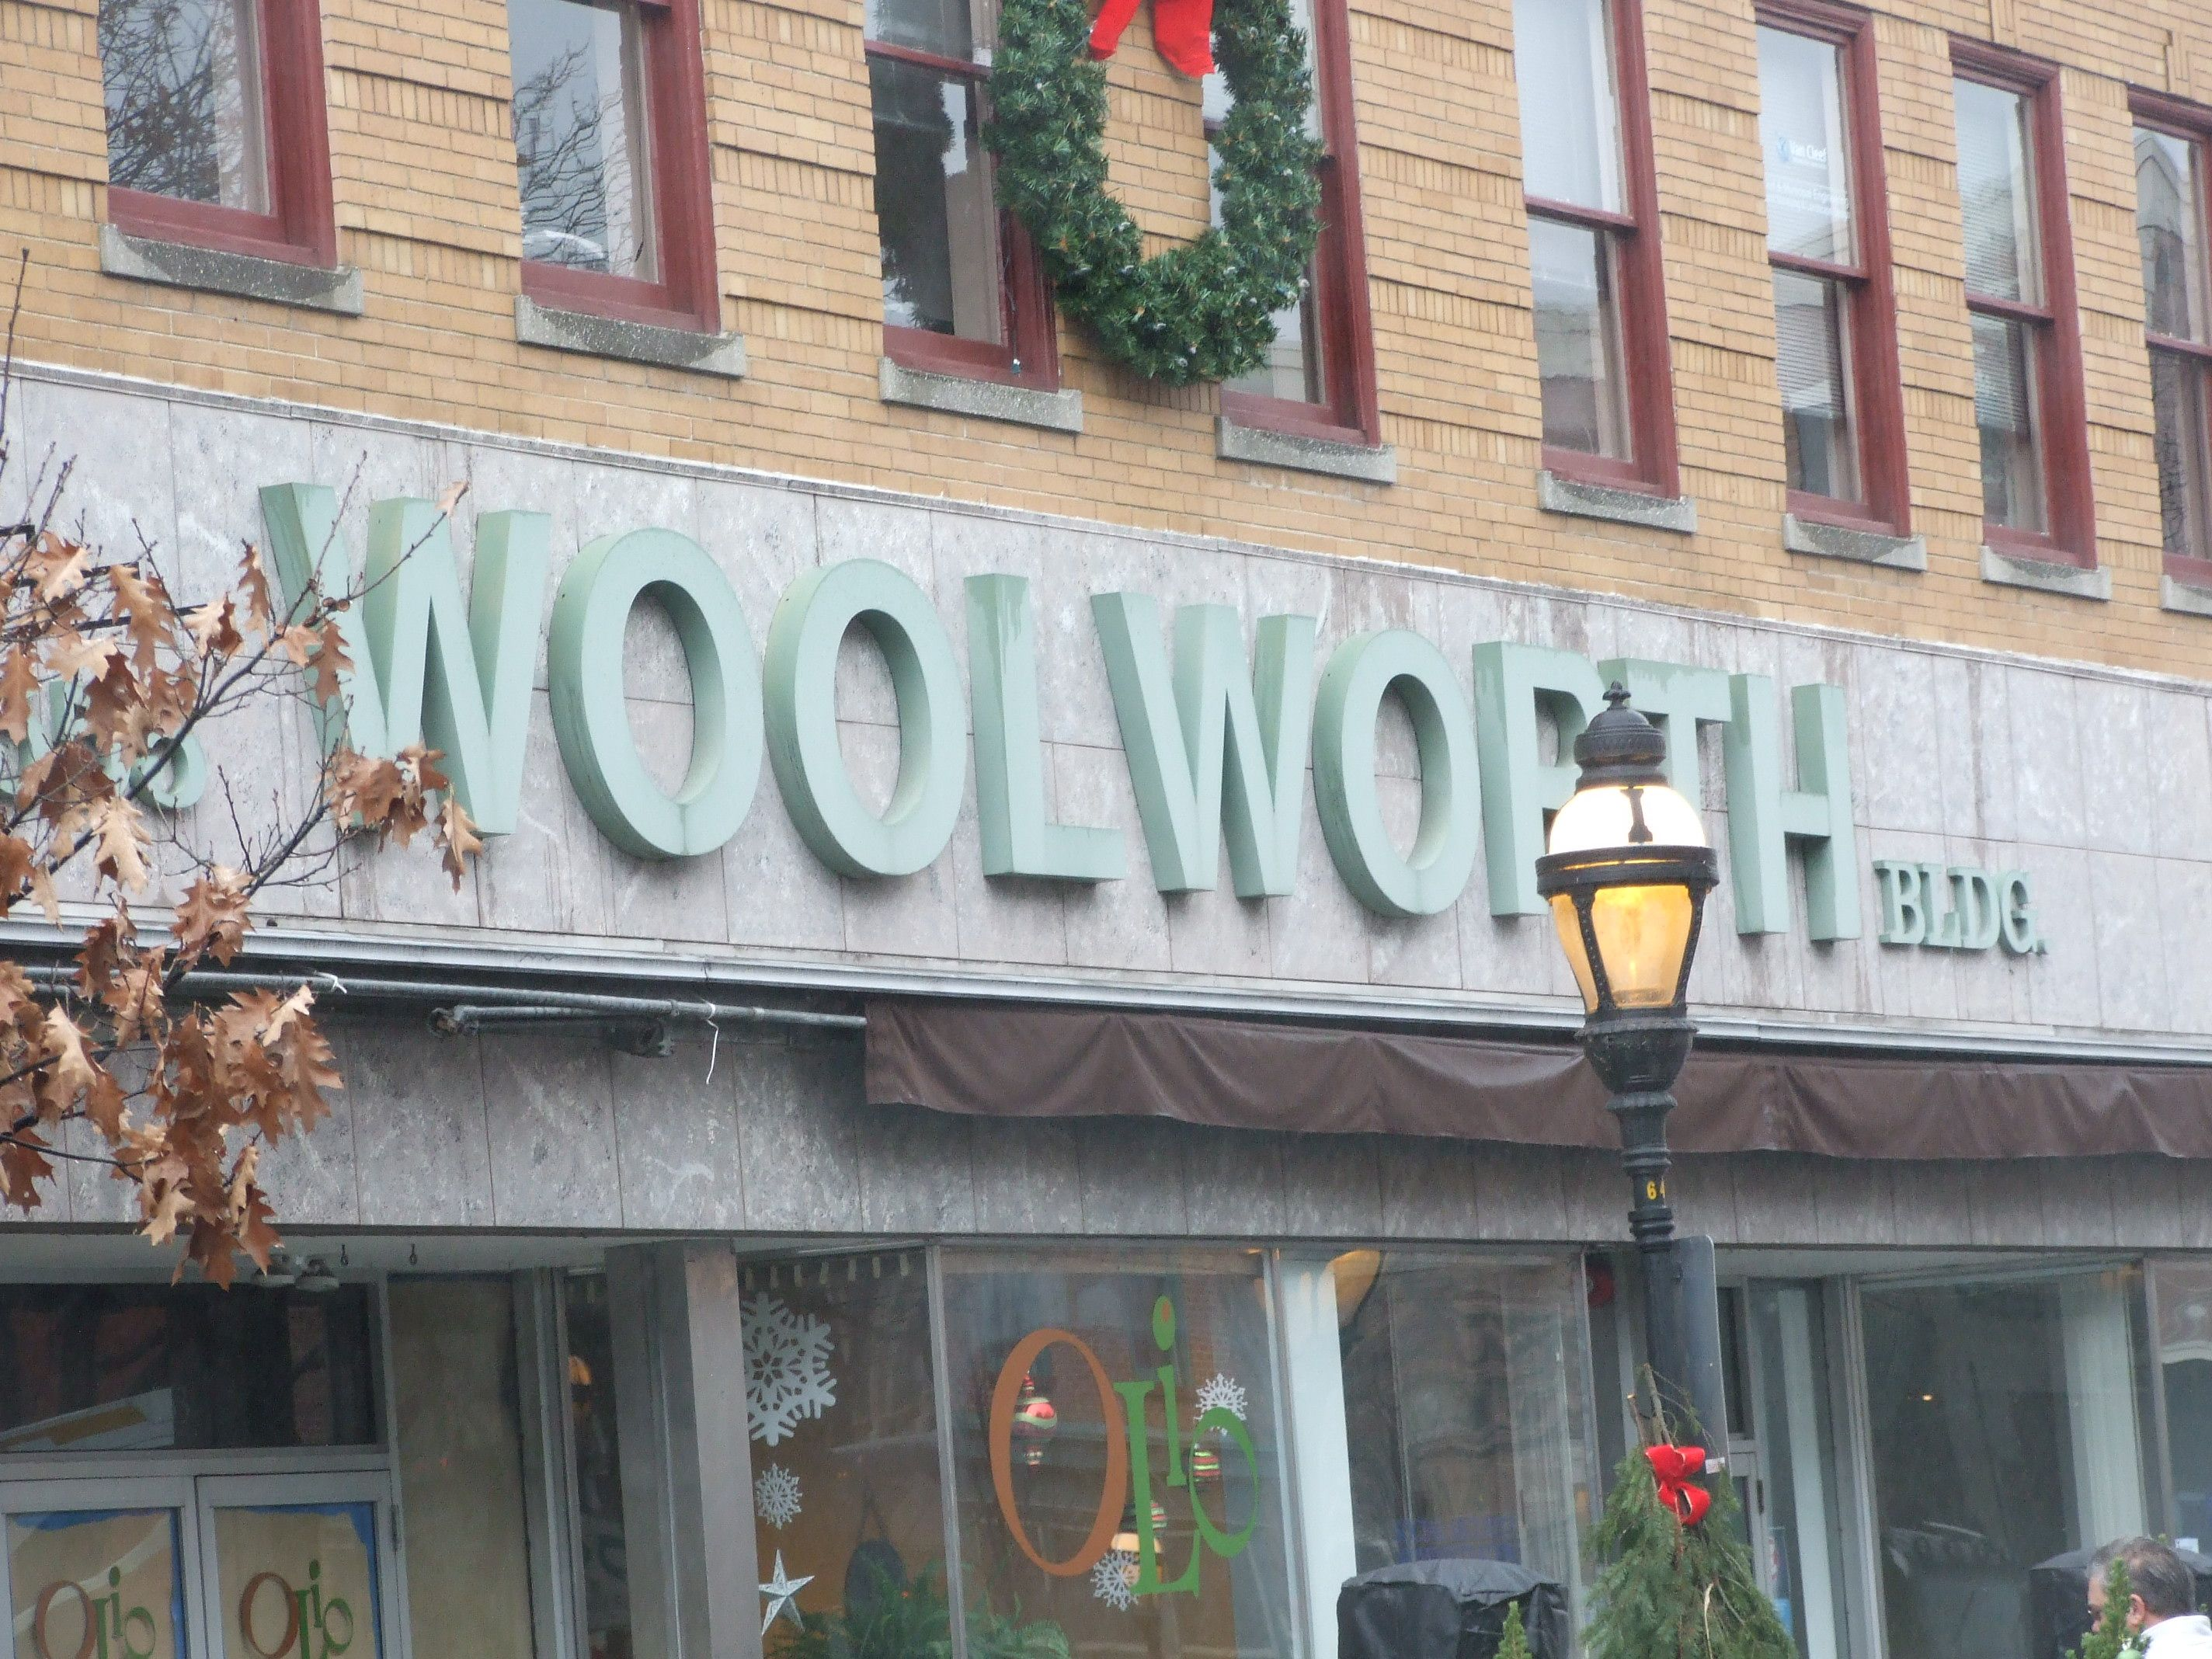 Didn't know Woolworth stores were still around   Bethlehem